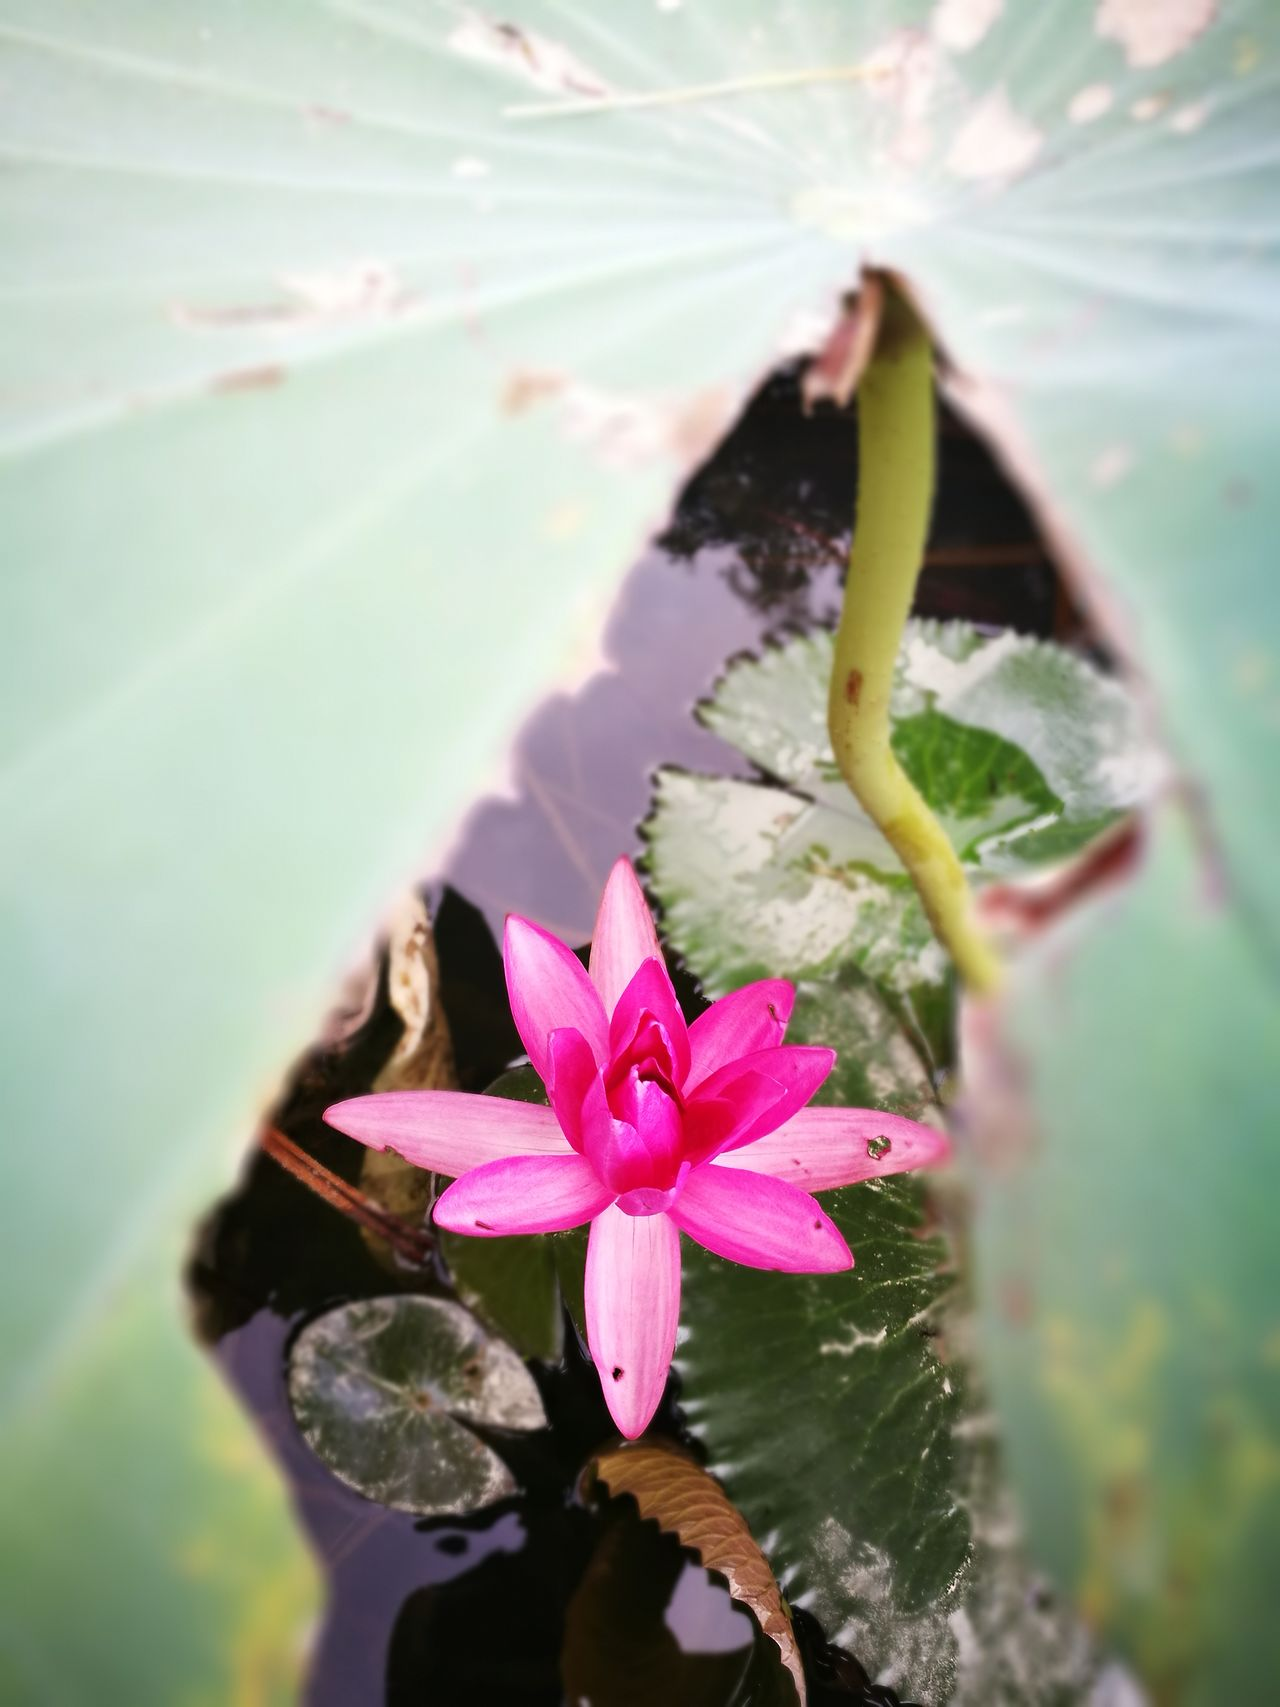 Flower Freshness Fragility Water Beauty In Nature Petal Nature Close-up Flower Head Selective Focus Pink Color Blossom Springtime Growth In Bloom Pink Focus On Foreground Day Water Lily Outdoors Lotus Flower Beautiful Taiwan Huawei P9 Plus Natural Light